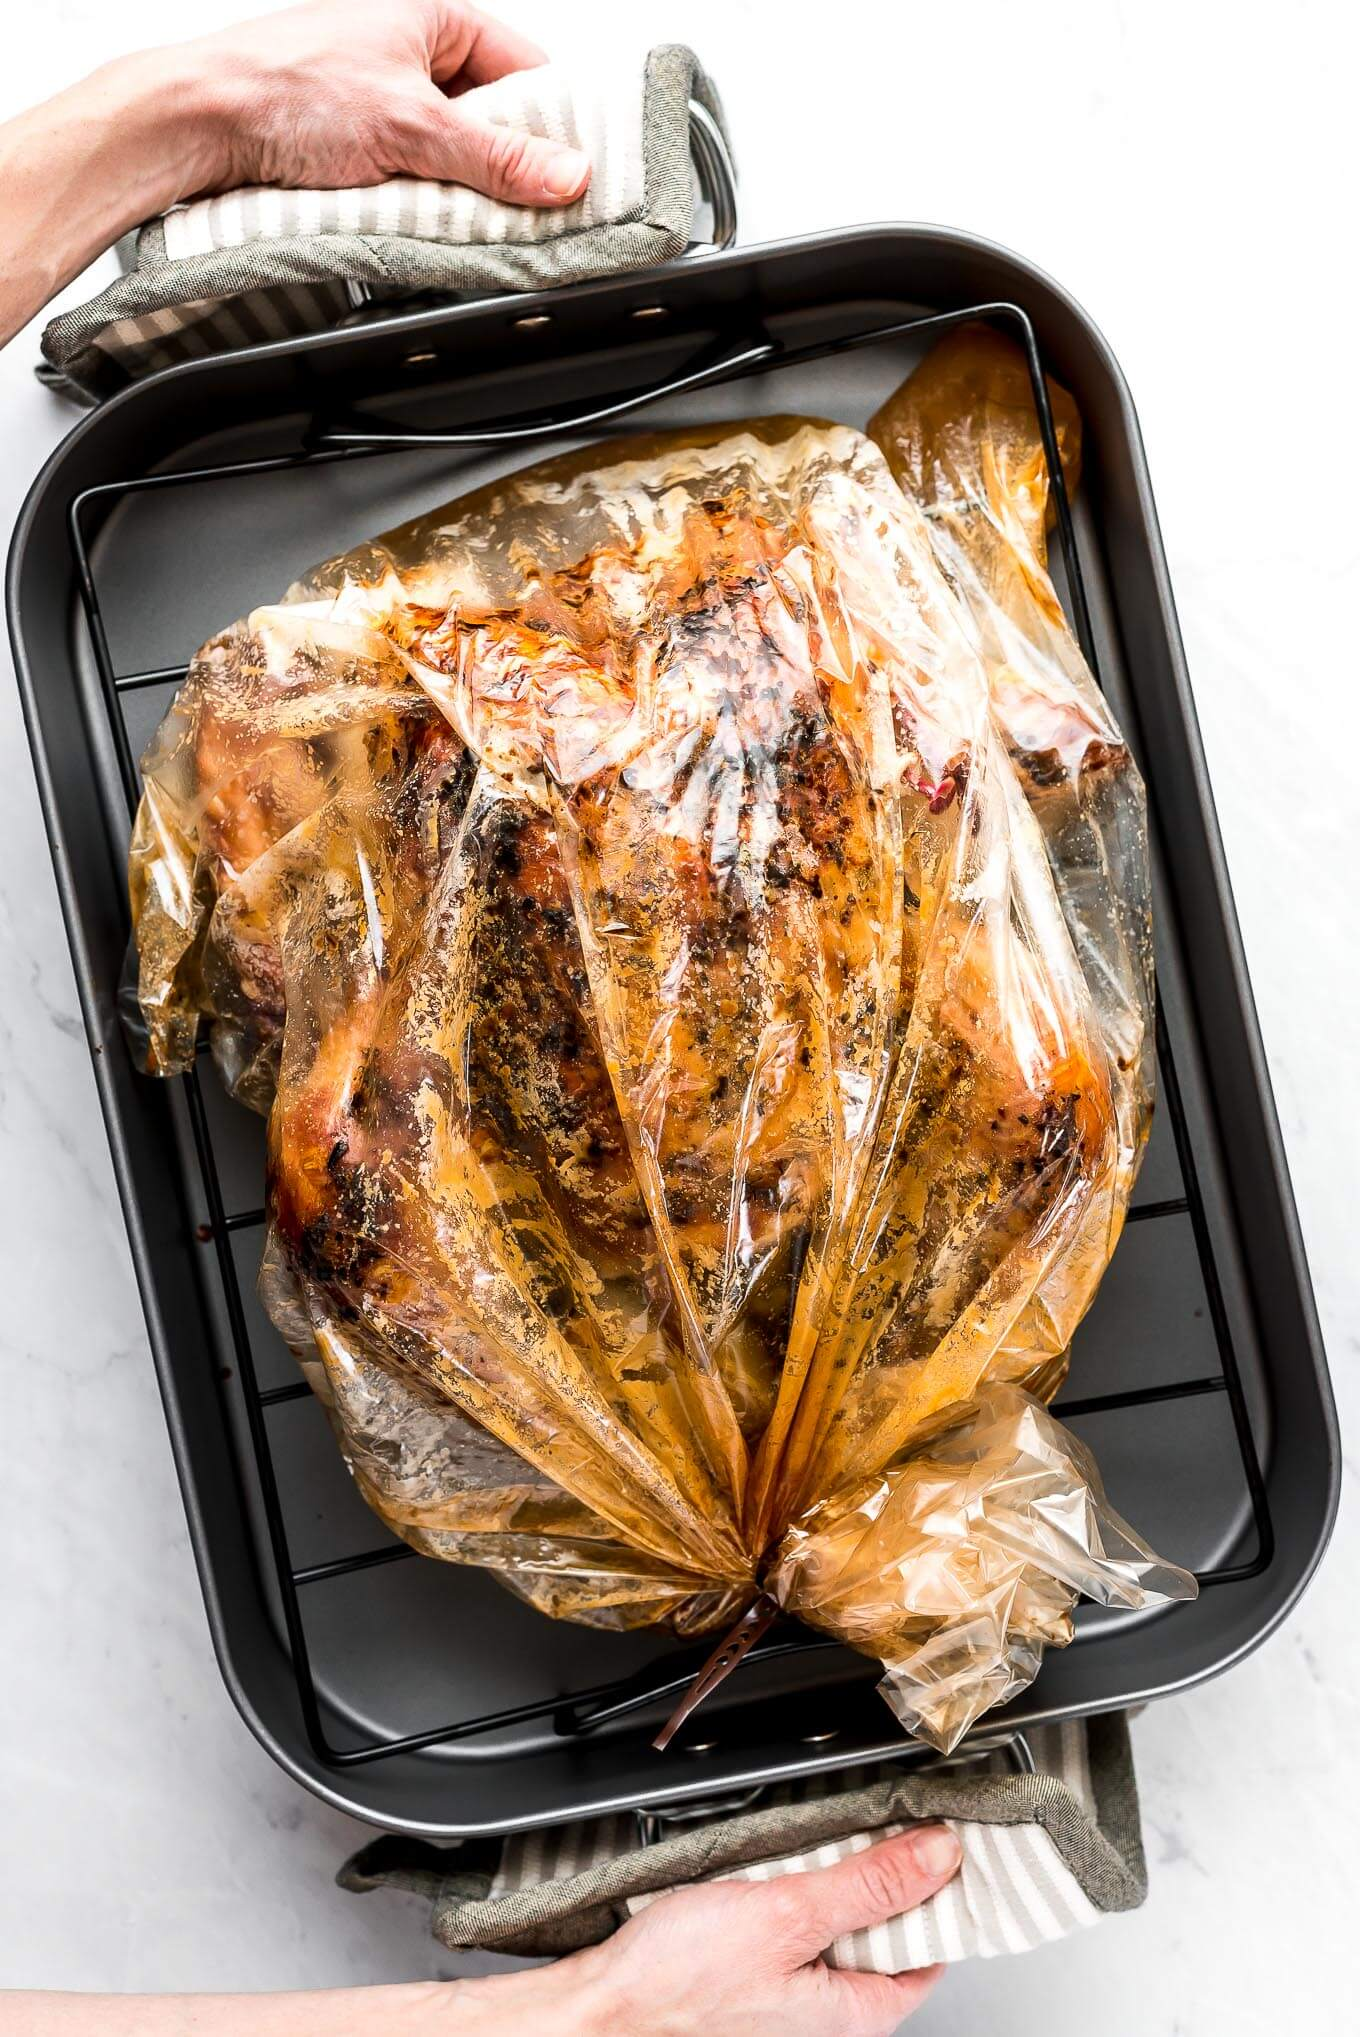 A roasting pan with cooked turkey in a bag and hands holding hot pads on the handles.